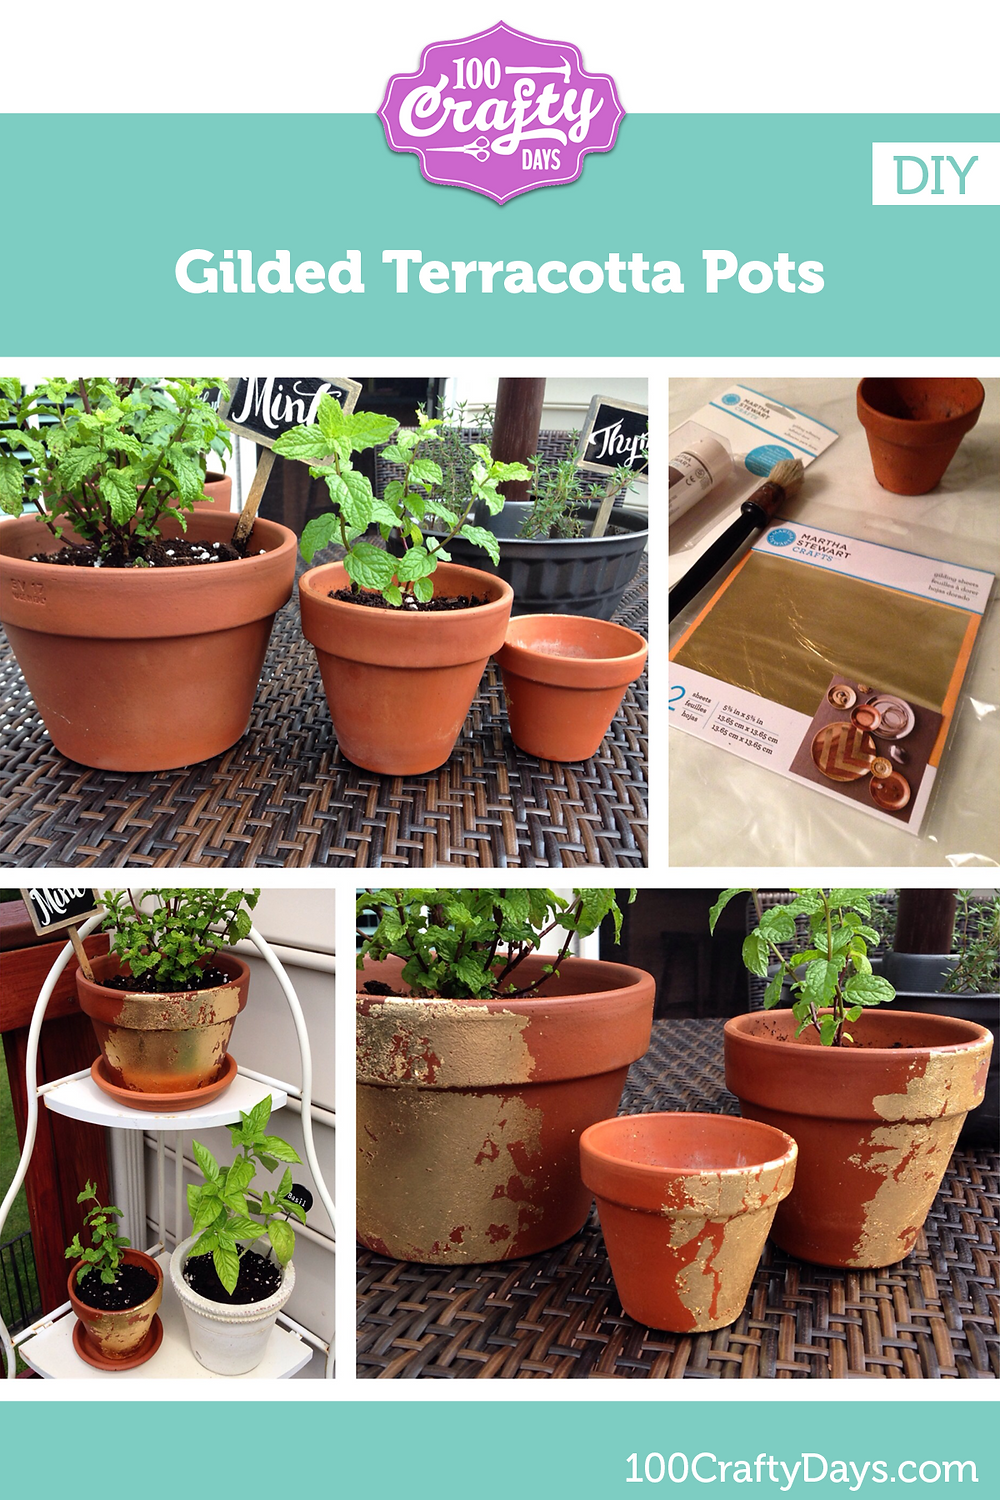 100 Crafty Days, Day 28 DIY Gilded Terracotta Pots